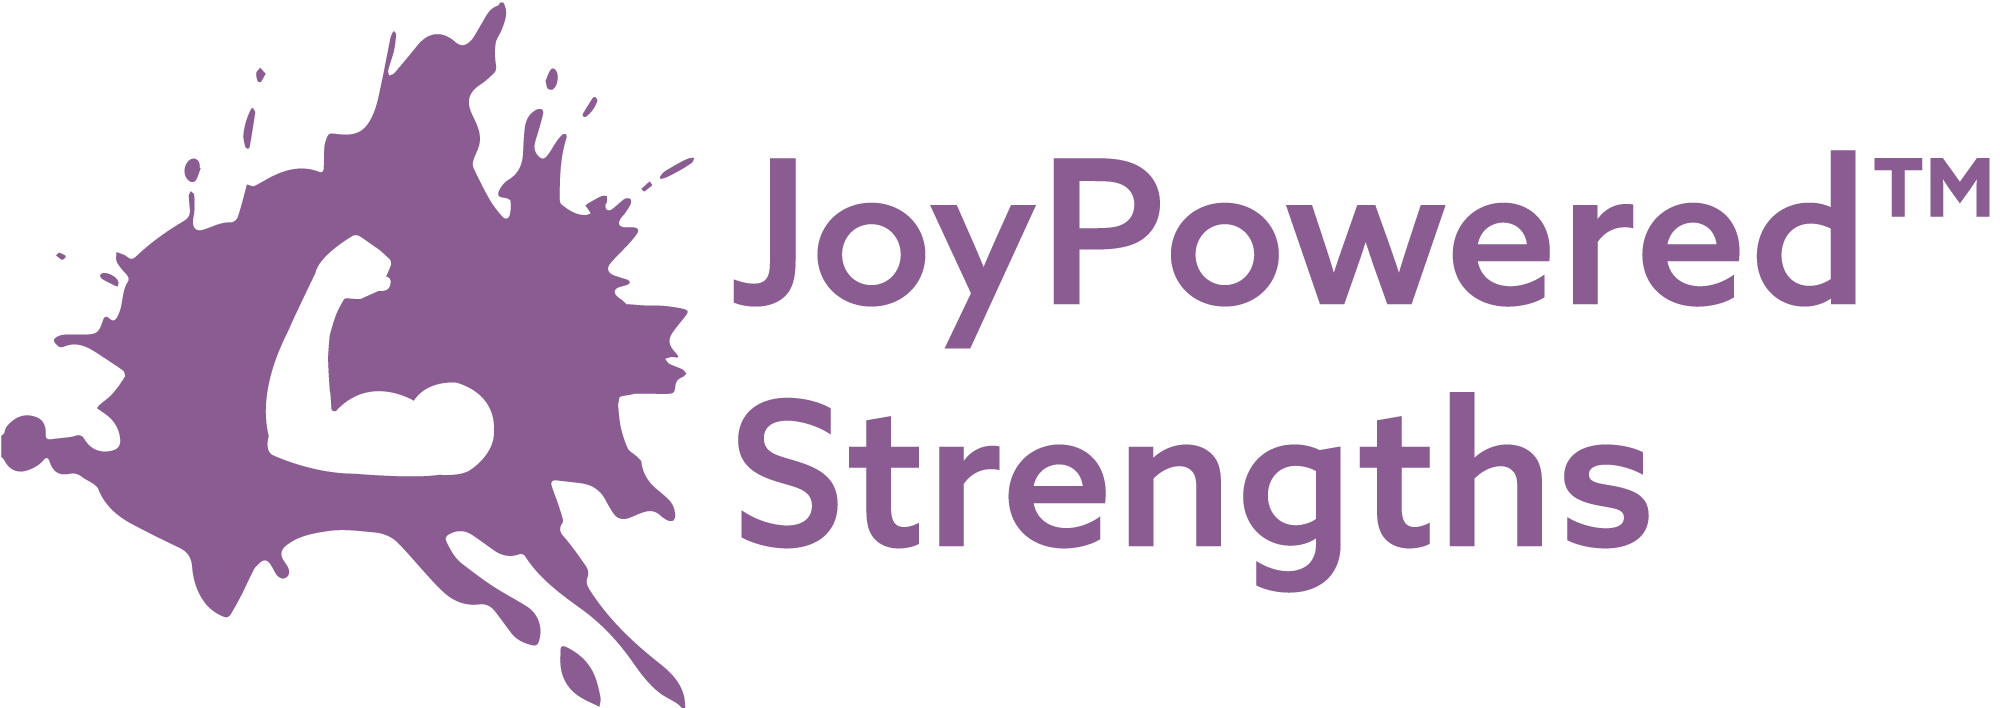 JoyPowered-Strengths-Logo-Large